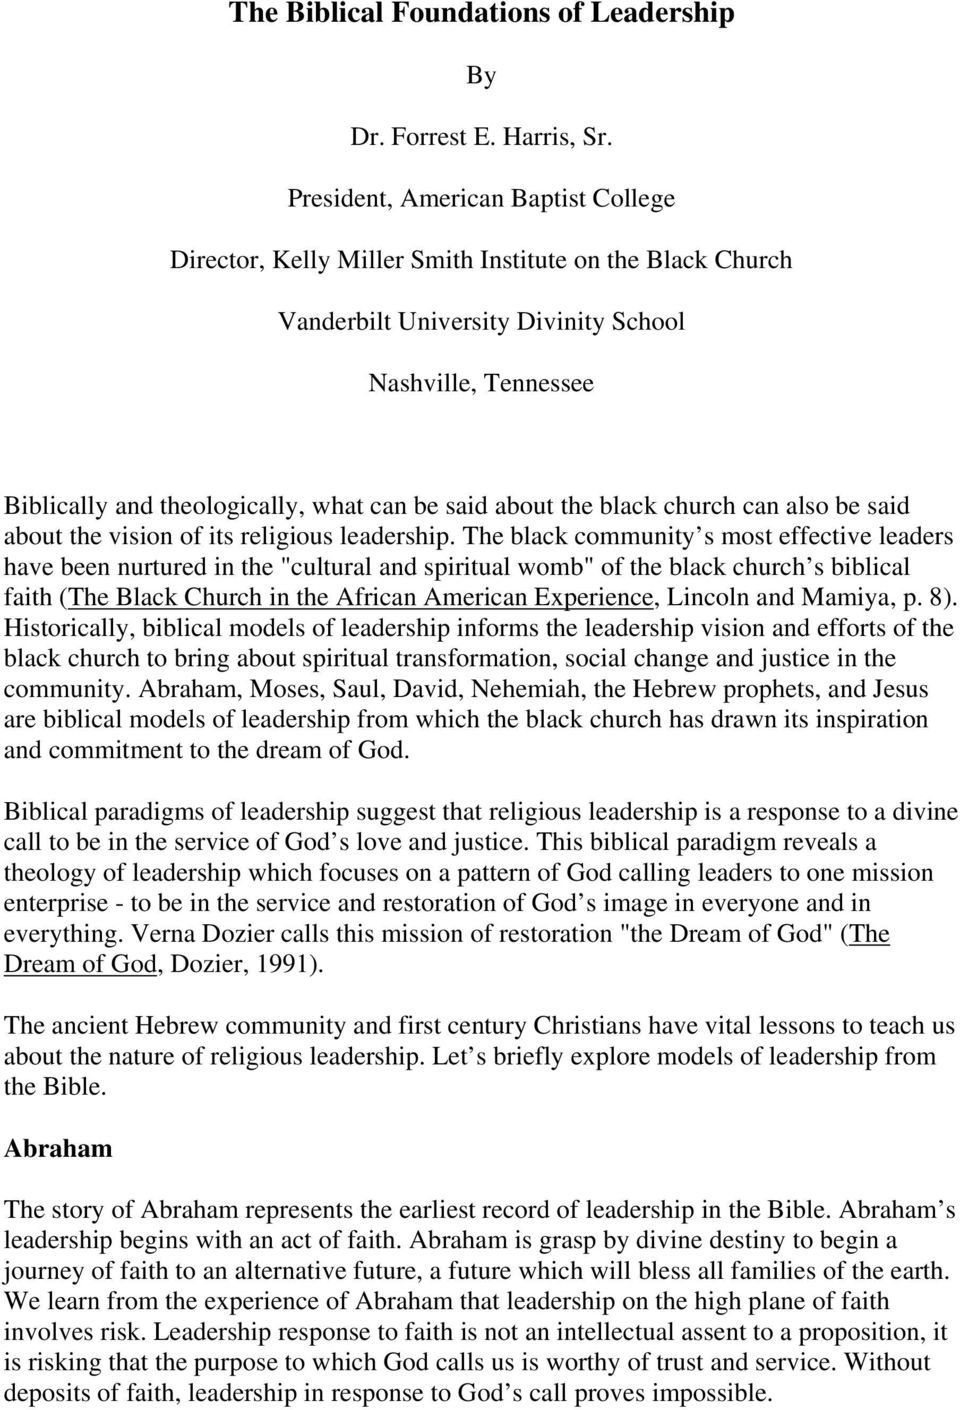 The Biblical Foundations of Leadership - PDF